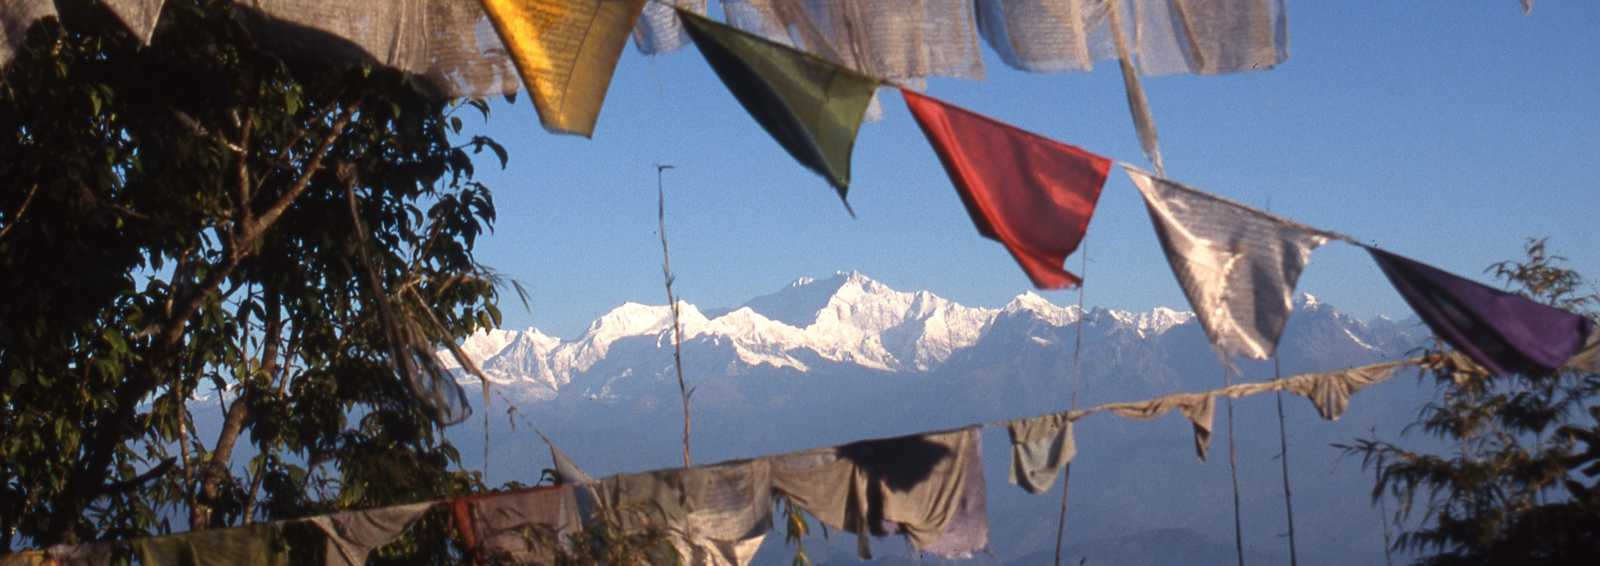 Kanchenjunga and prayer flags from Darjeeling, India